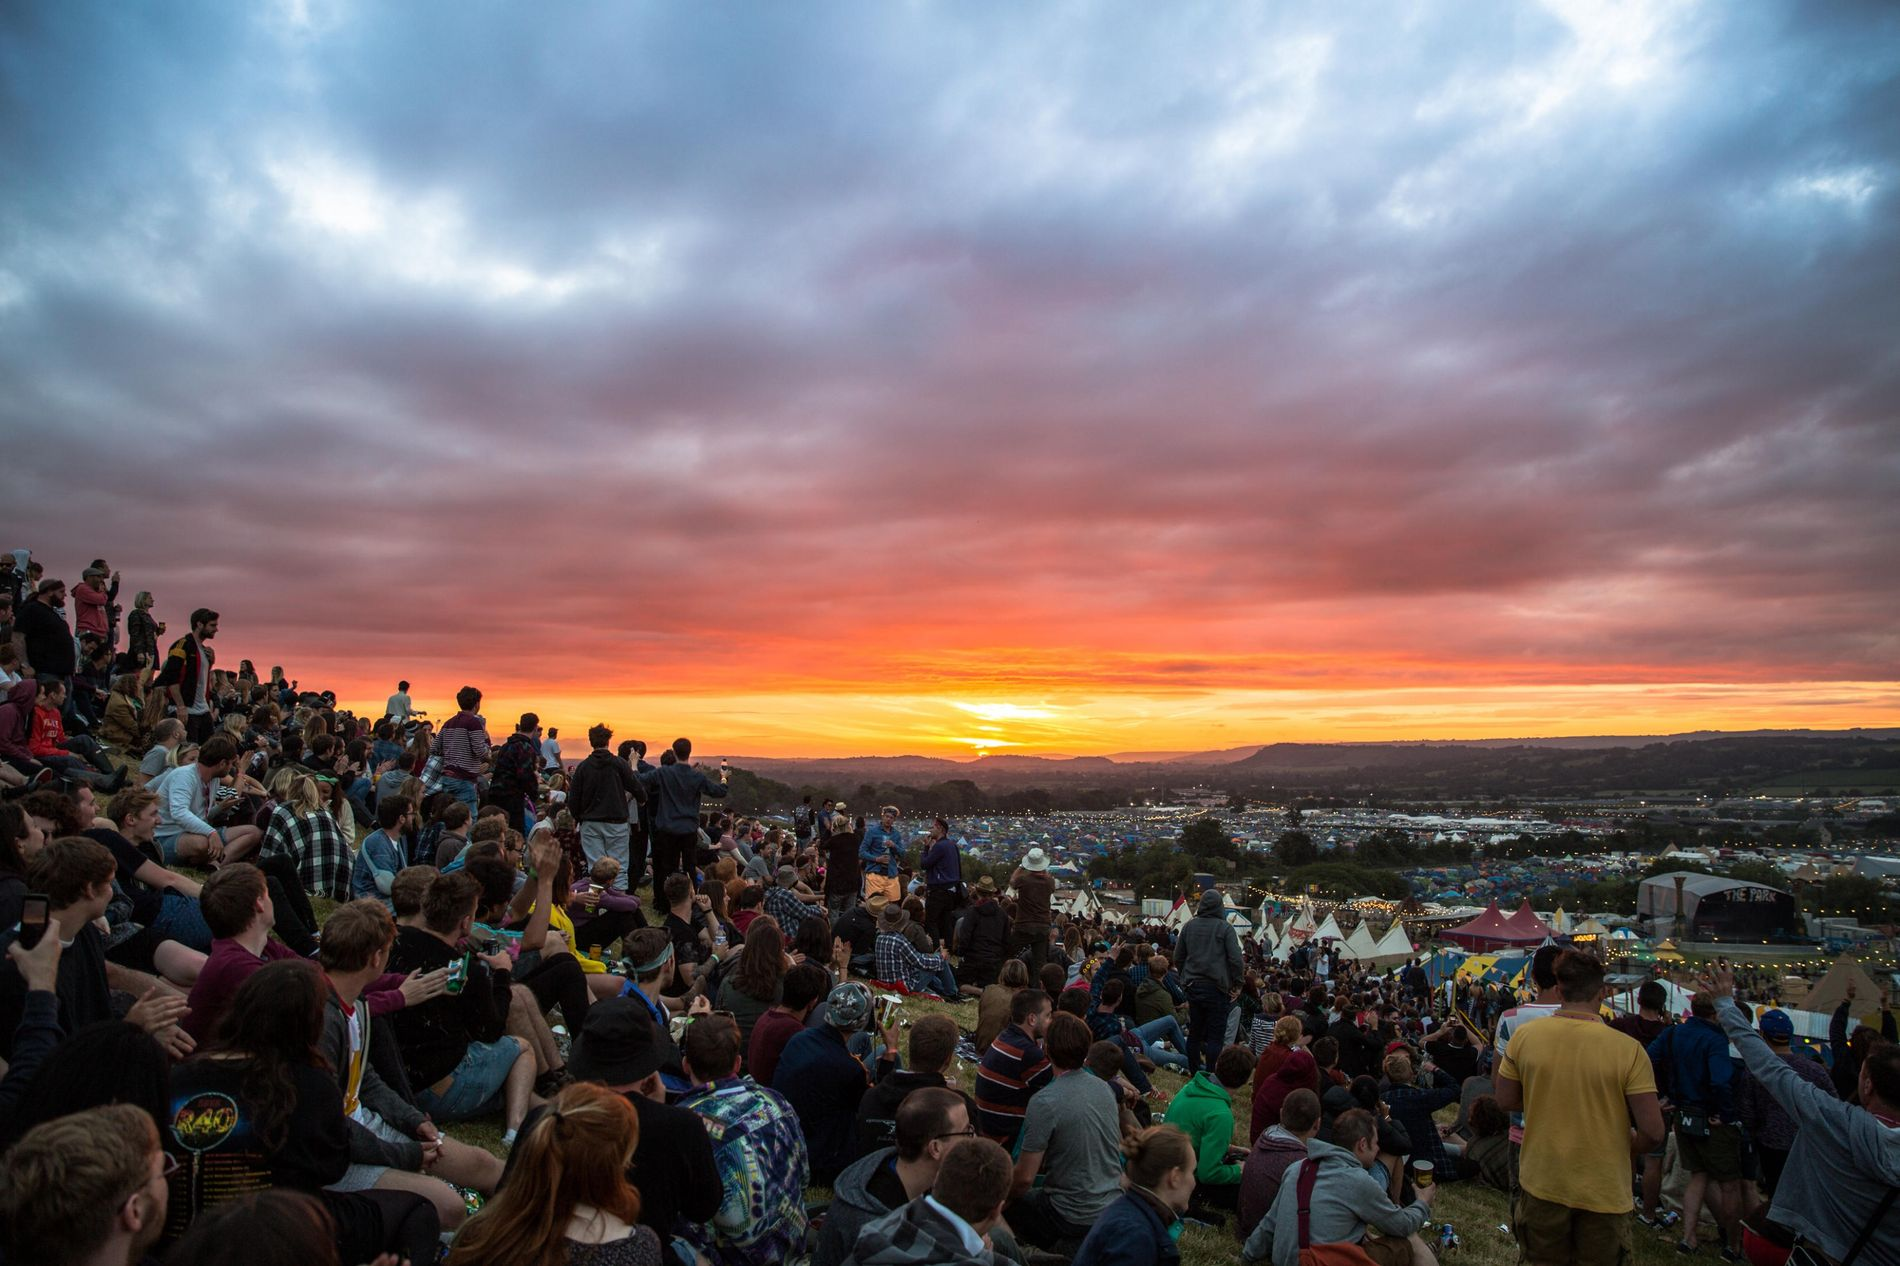 Festival-goers watch the sunset from Worthy Farm during the Glastonbury Festival.